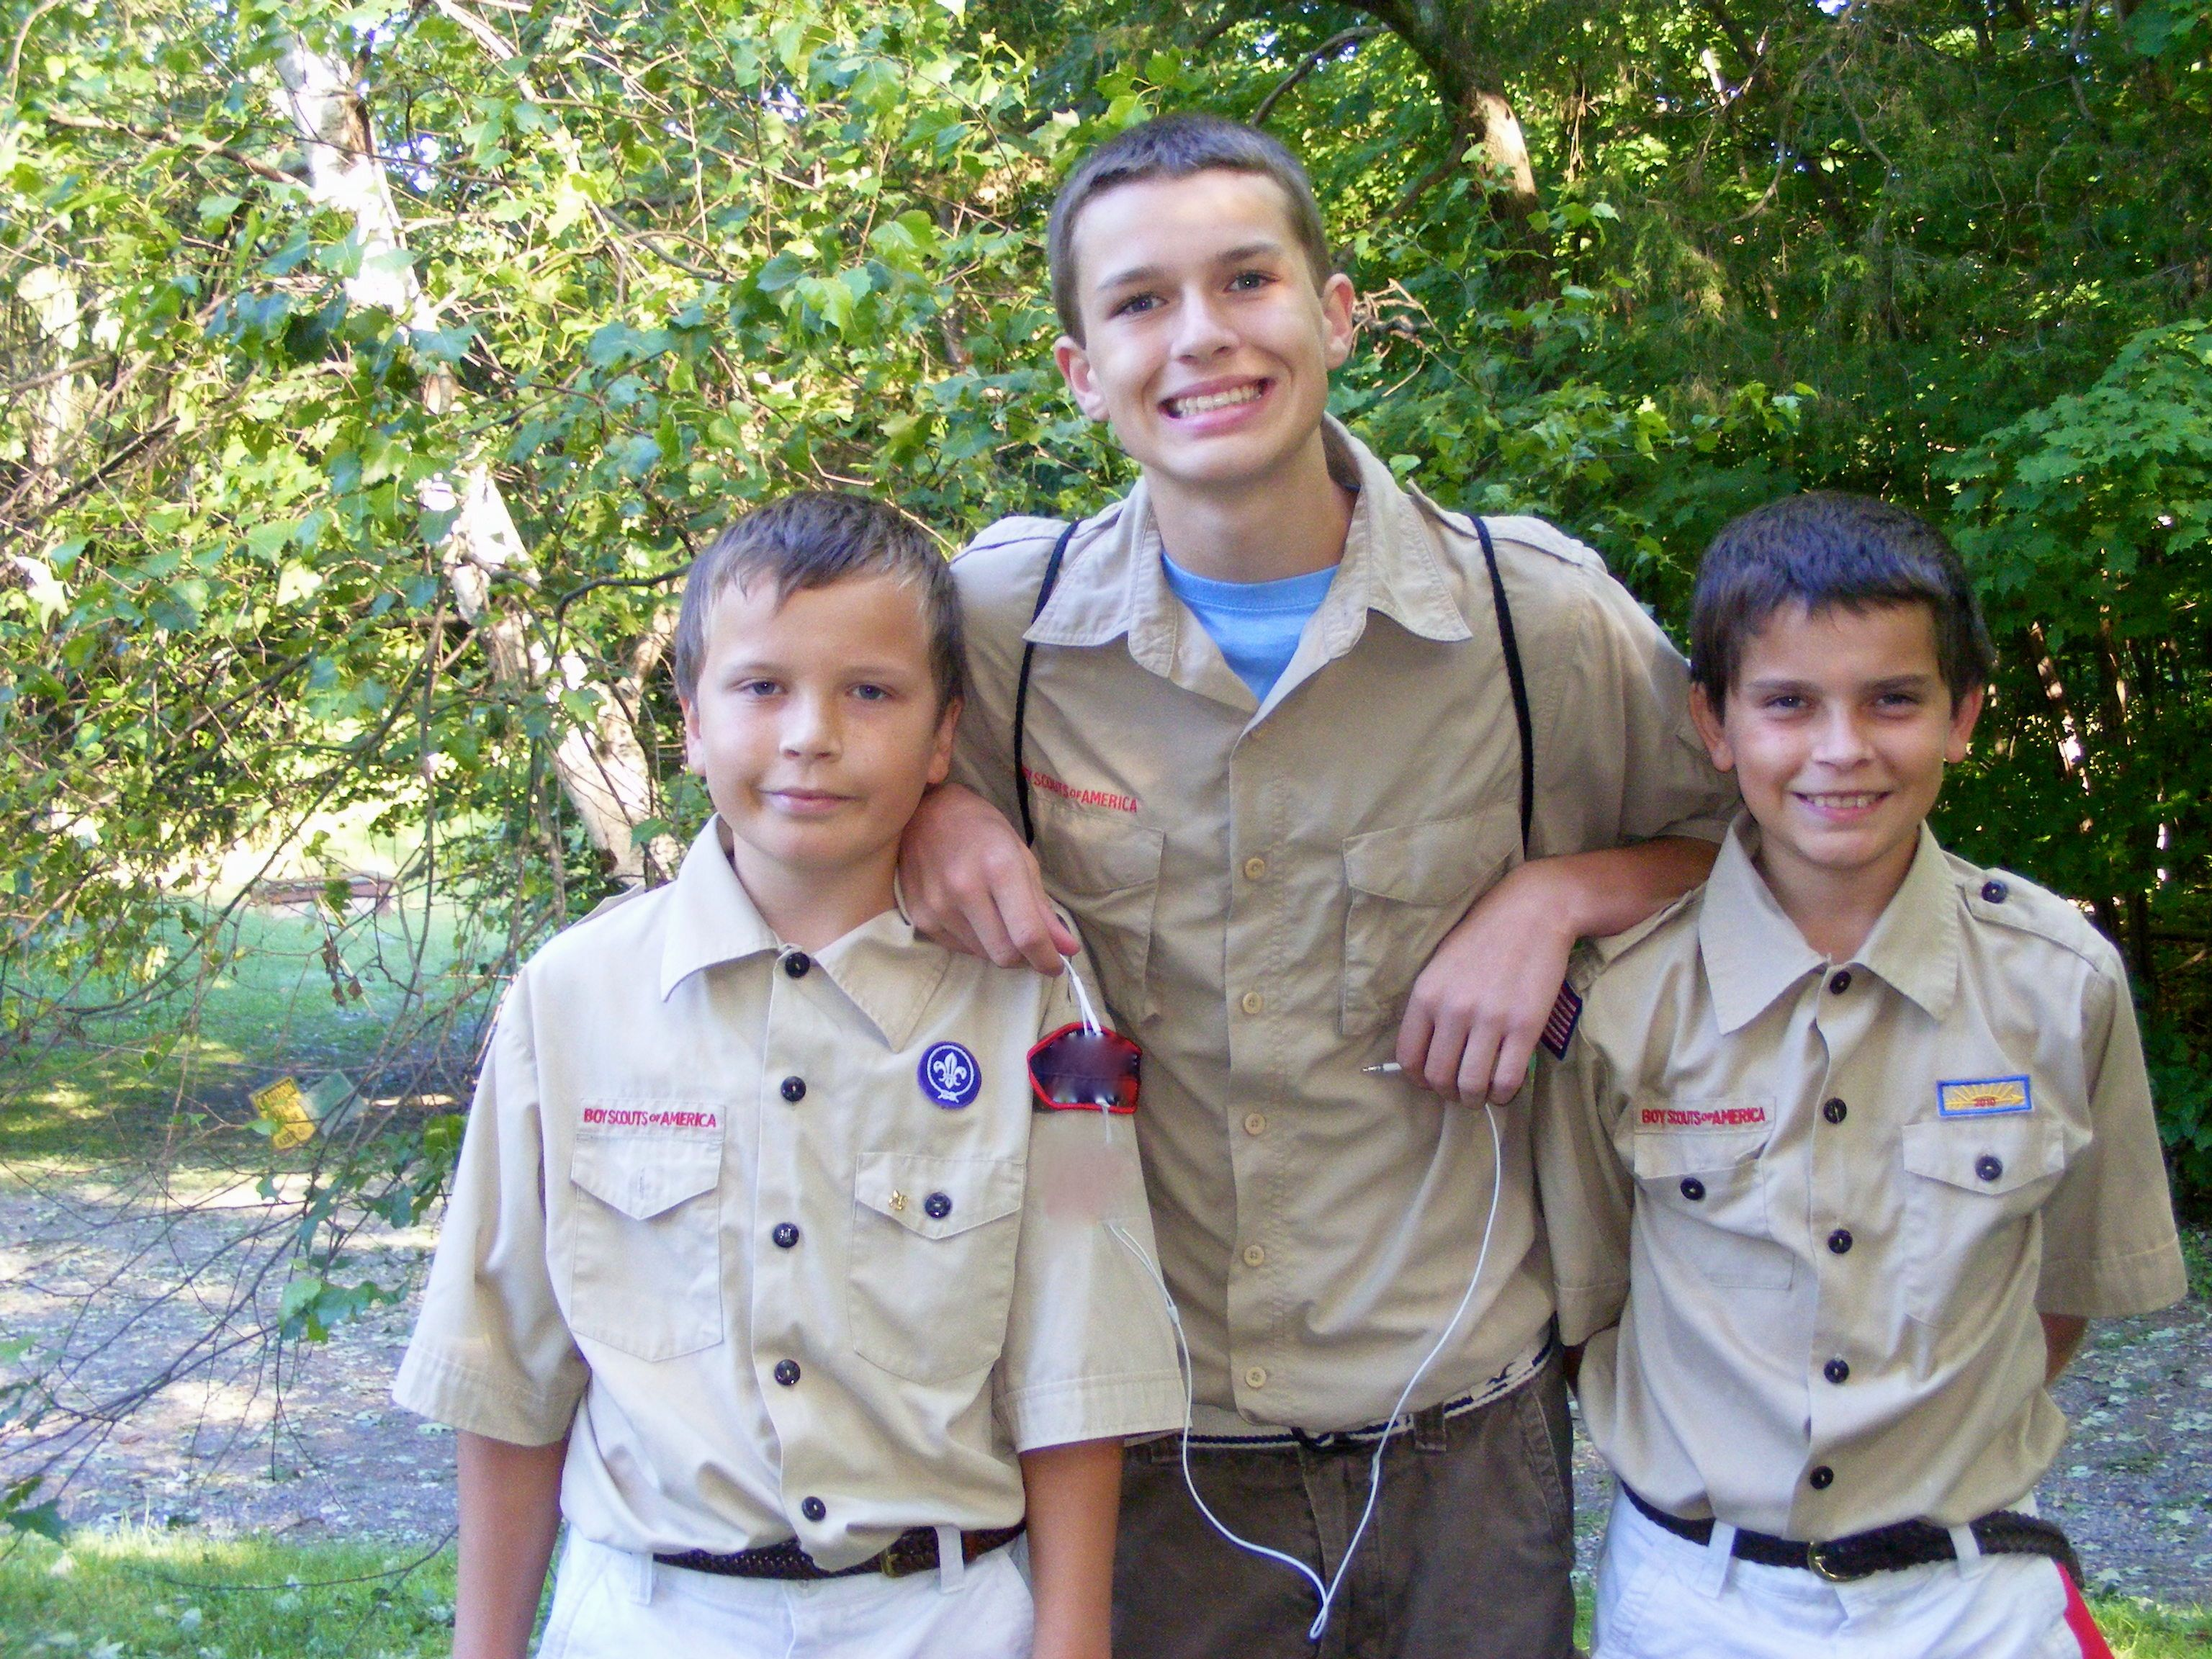 Boys Scouts ready for camp